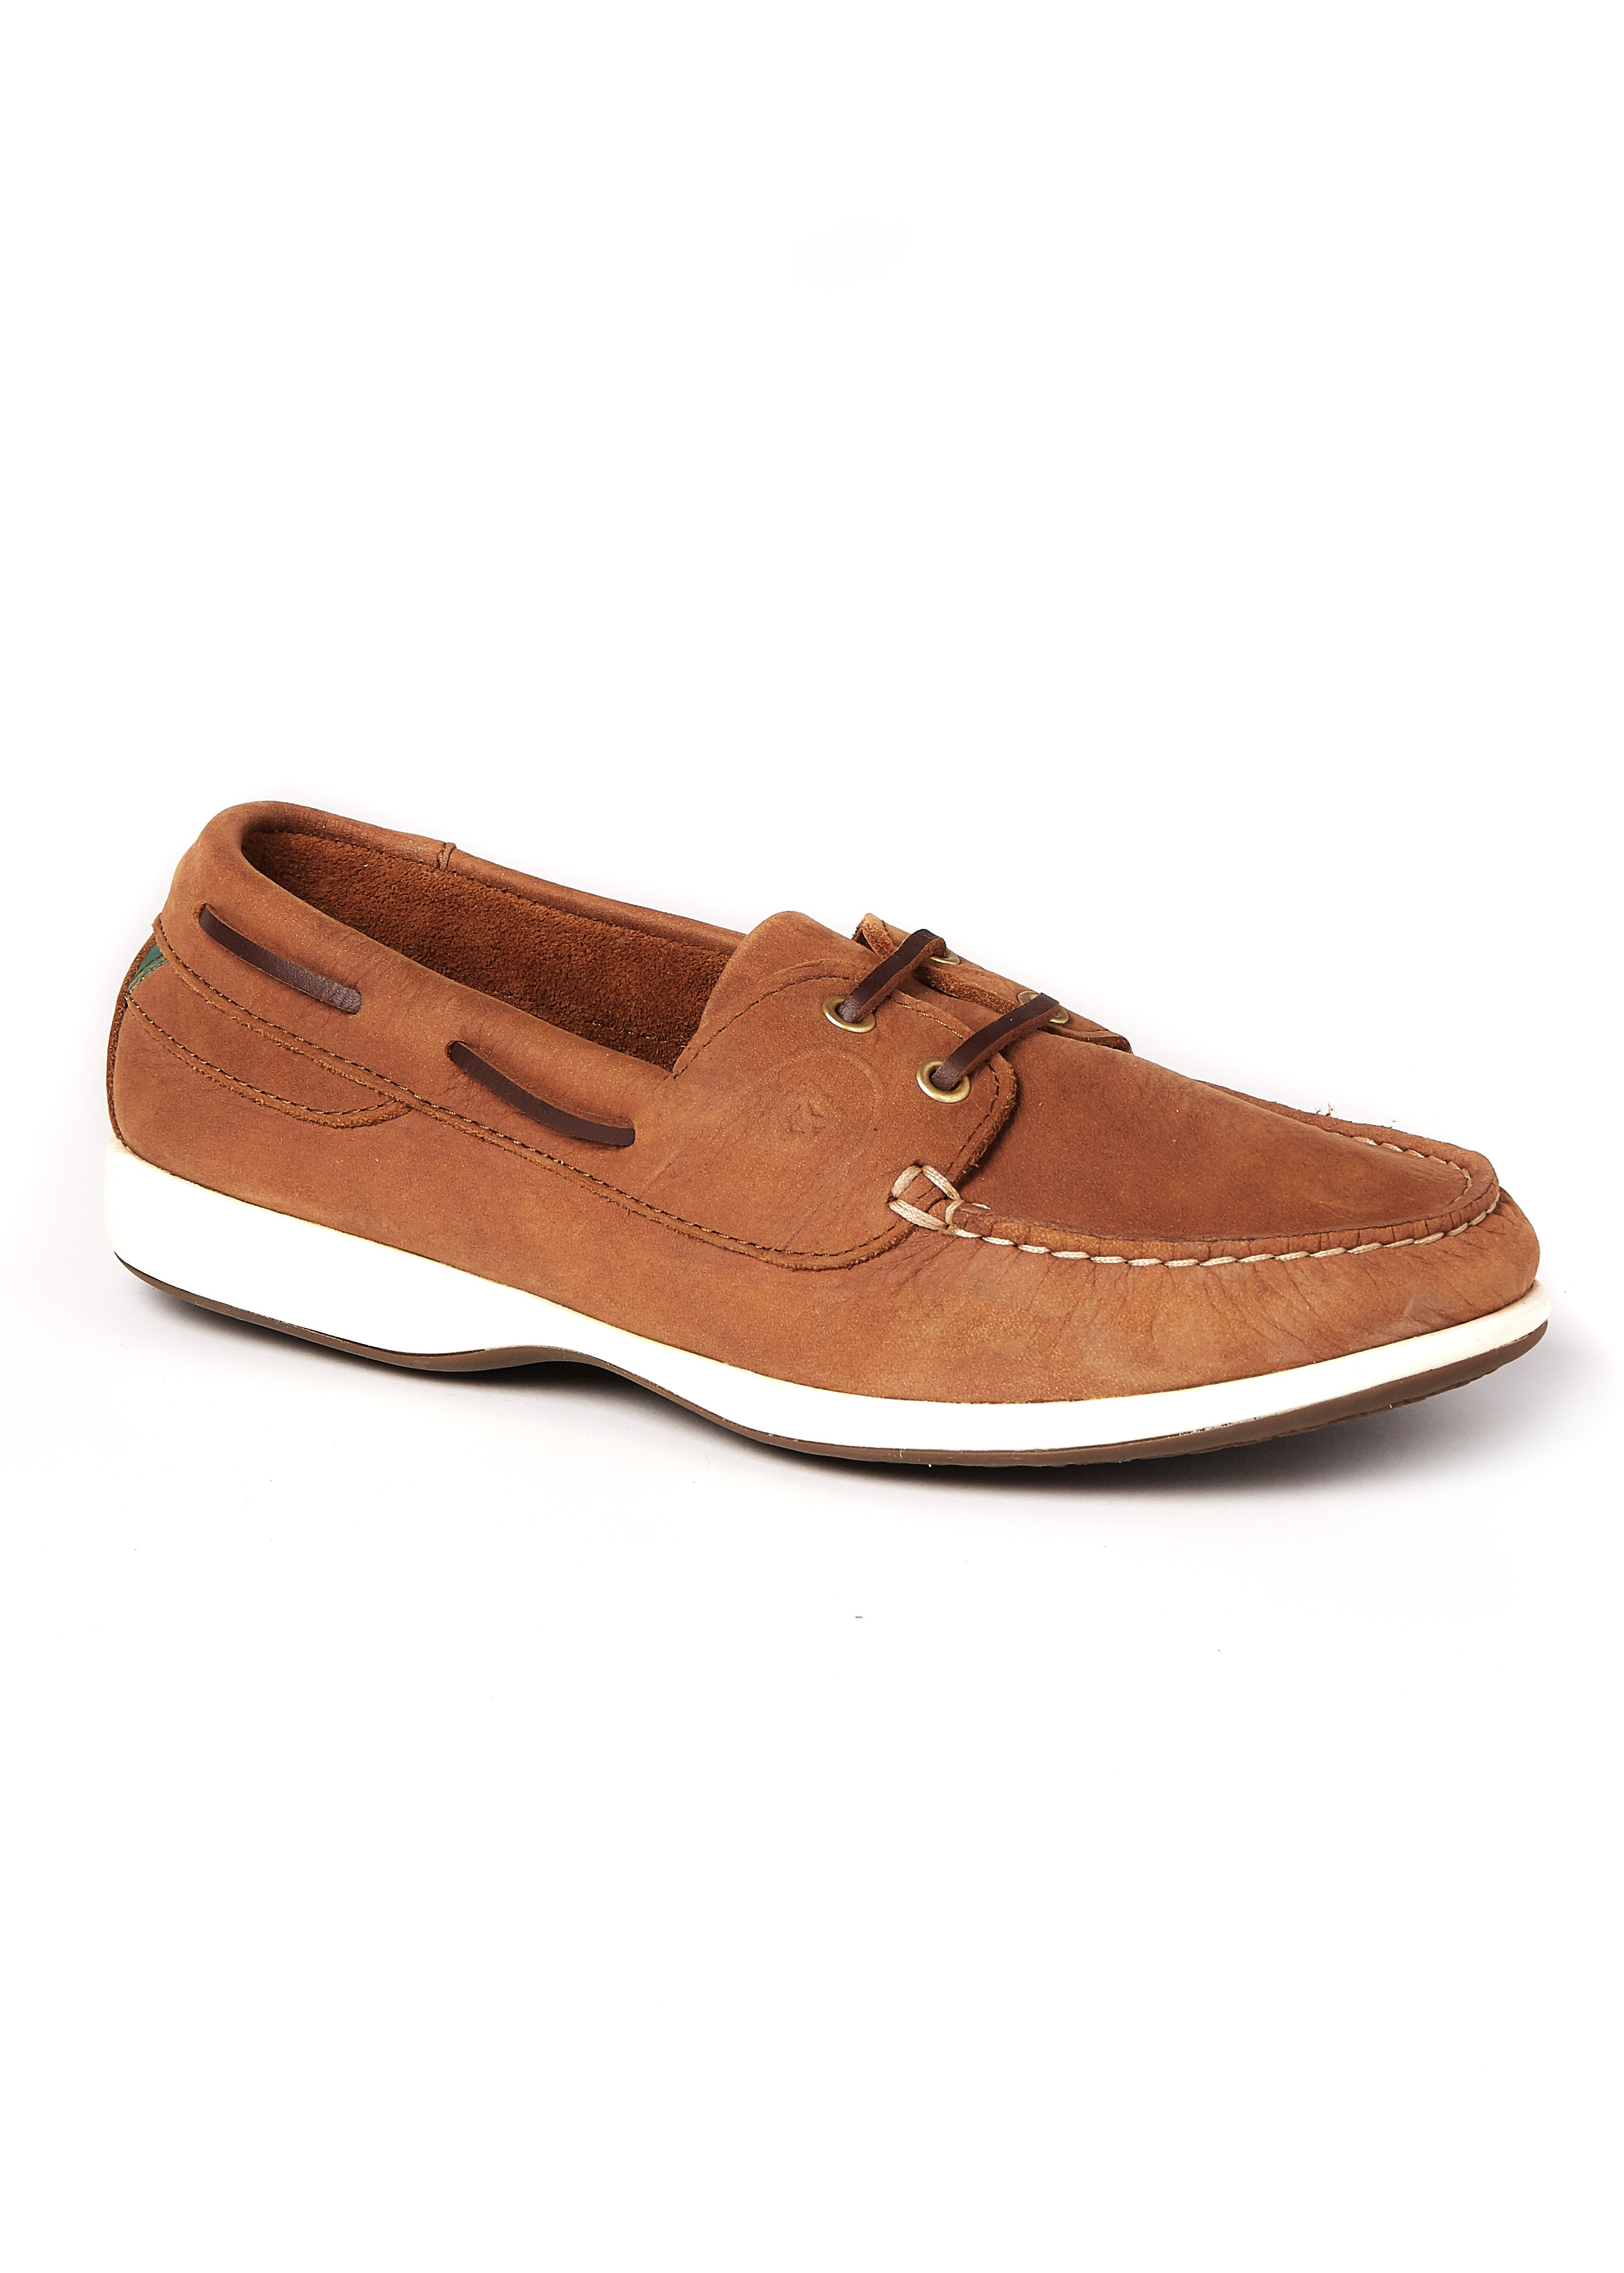 Dubarry Elba X Light Deck Shoe for Ladies in Chestnut